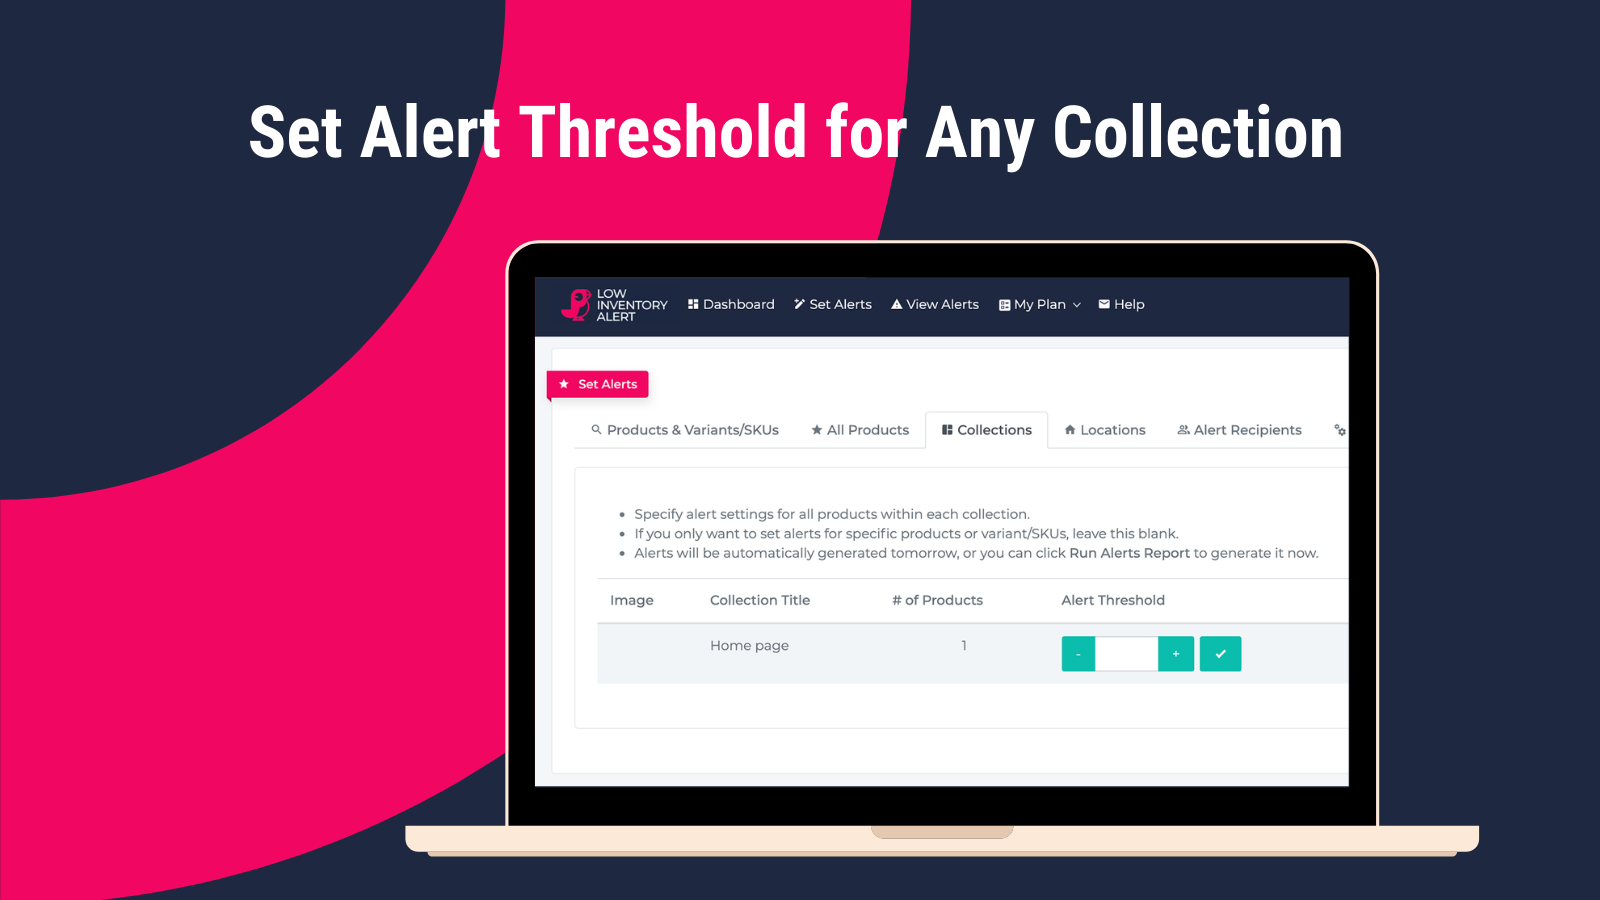 Set Alert Threshold for Any Collection